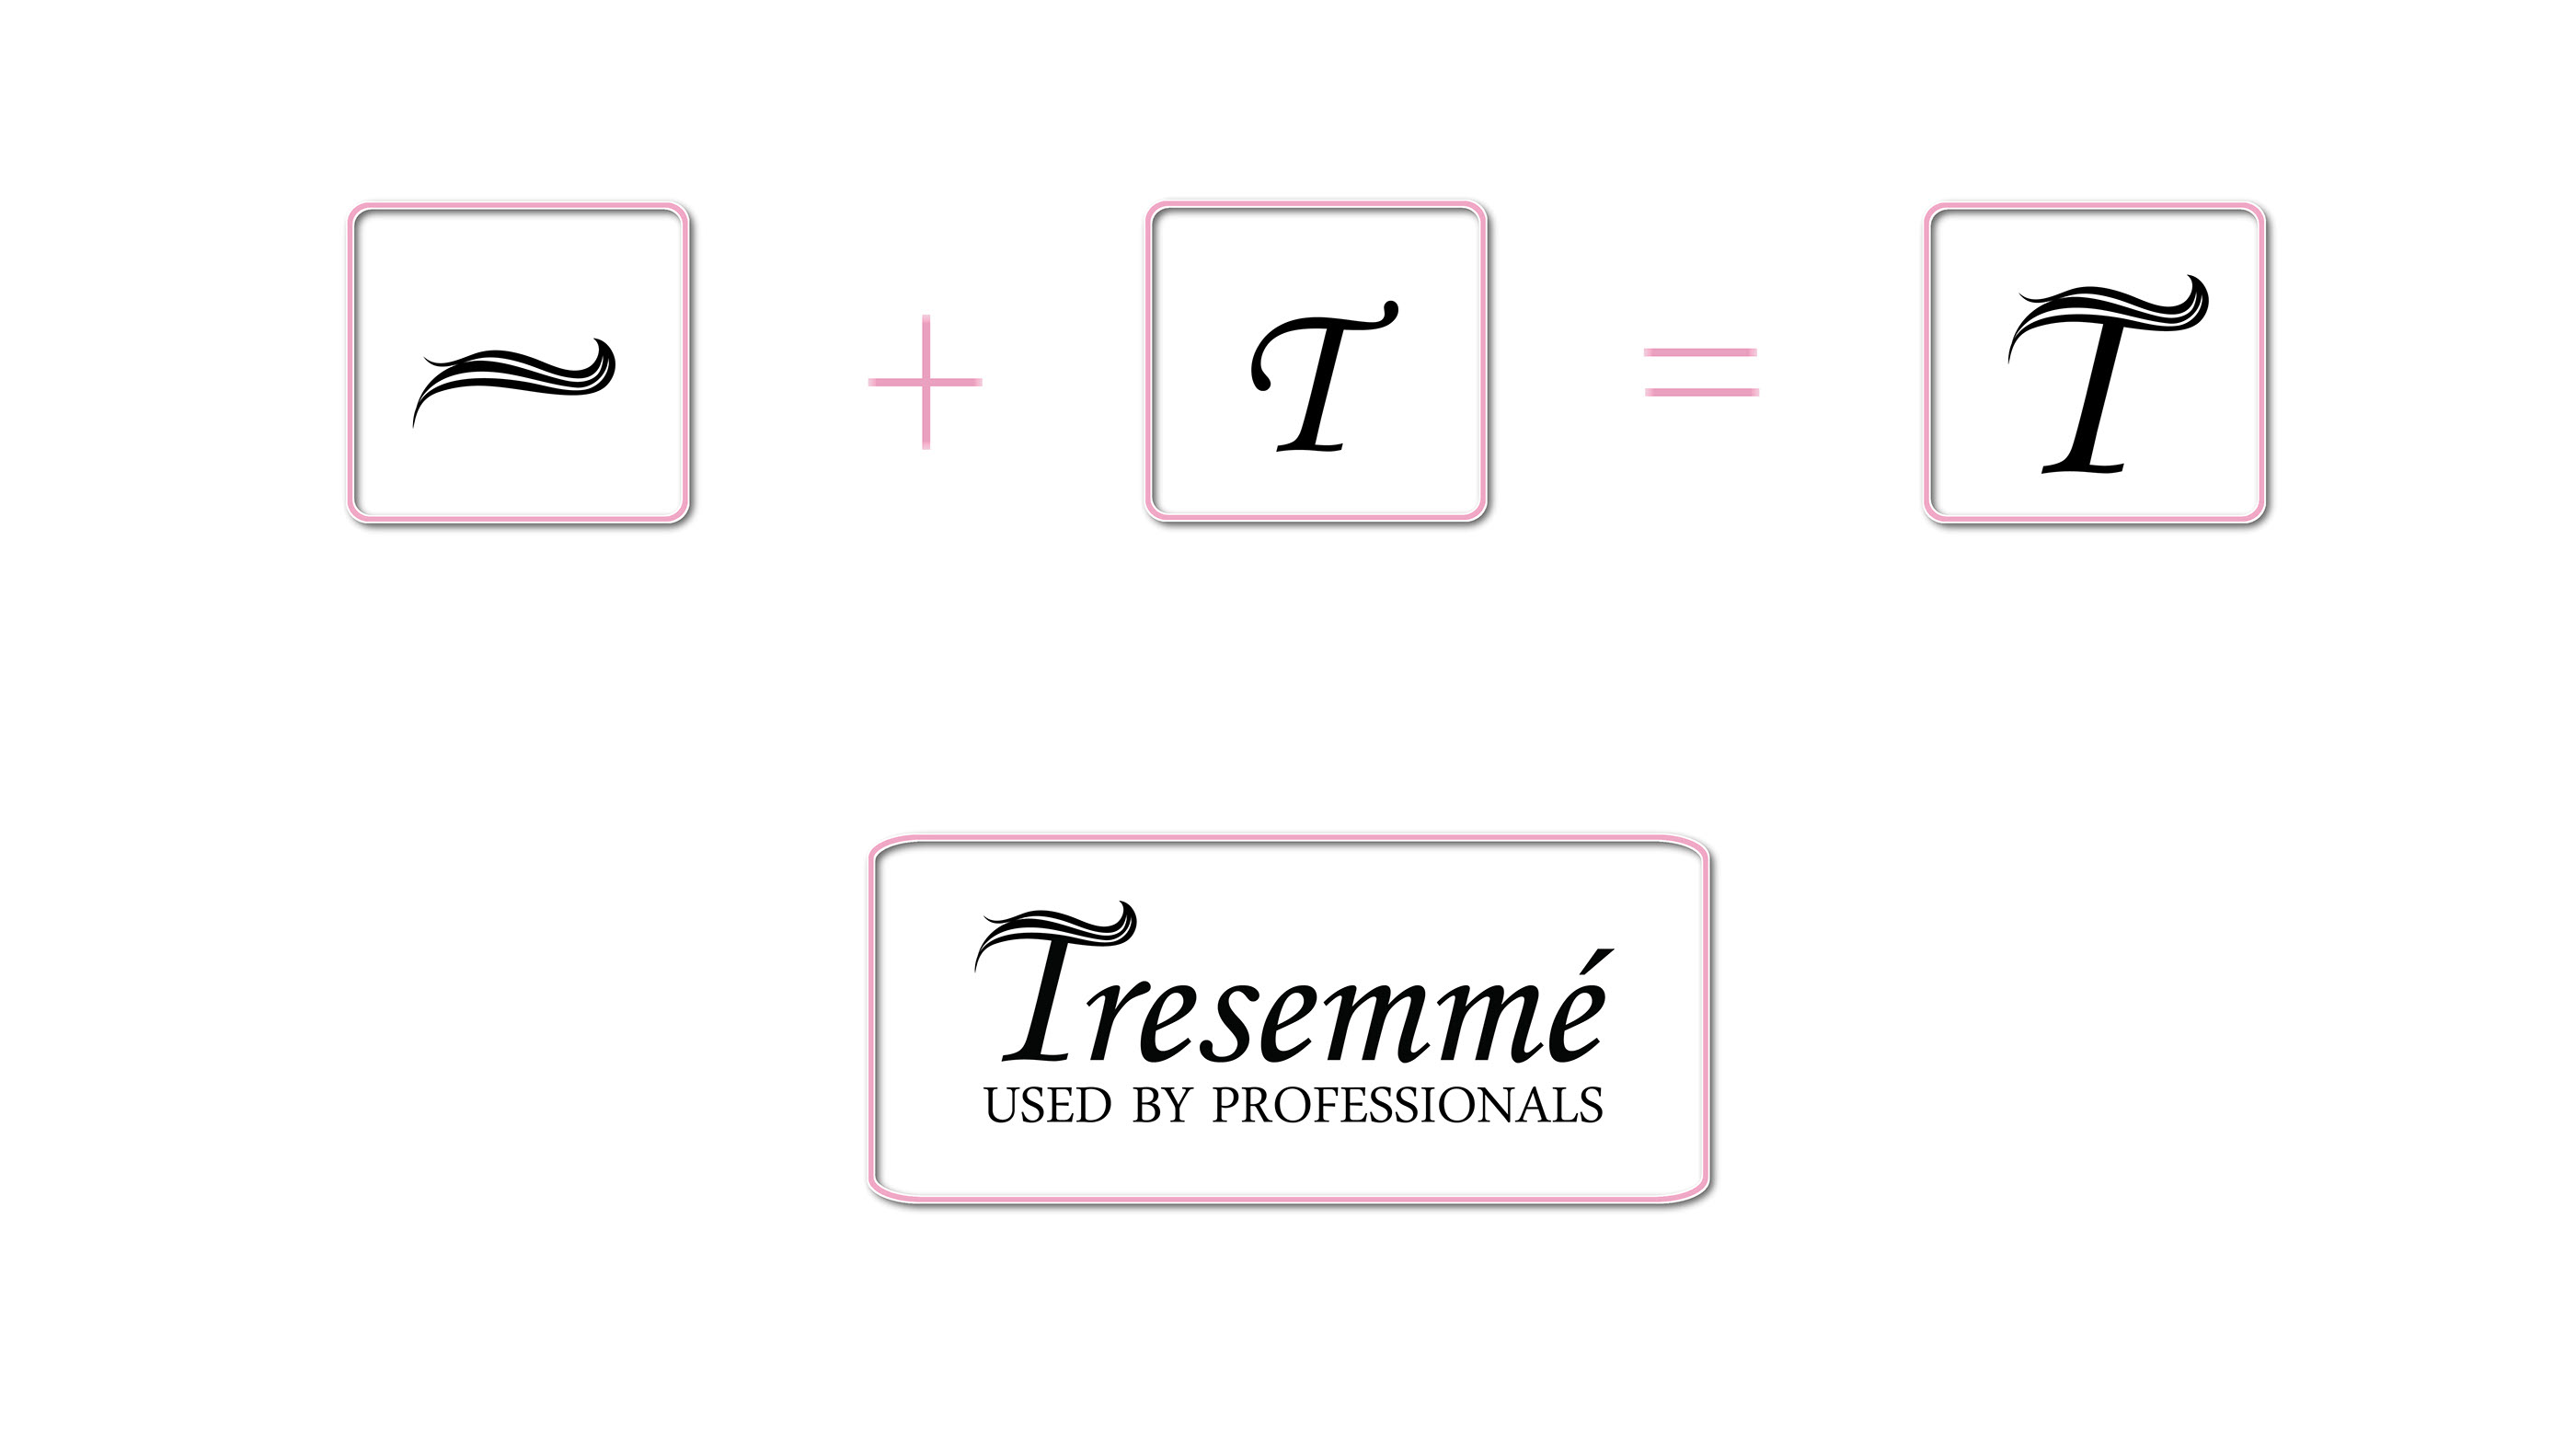 Redesigning the Brand (TRESemmé) on Behance.